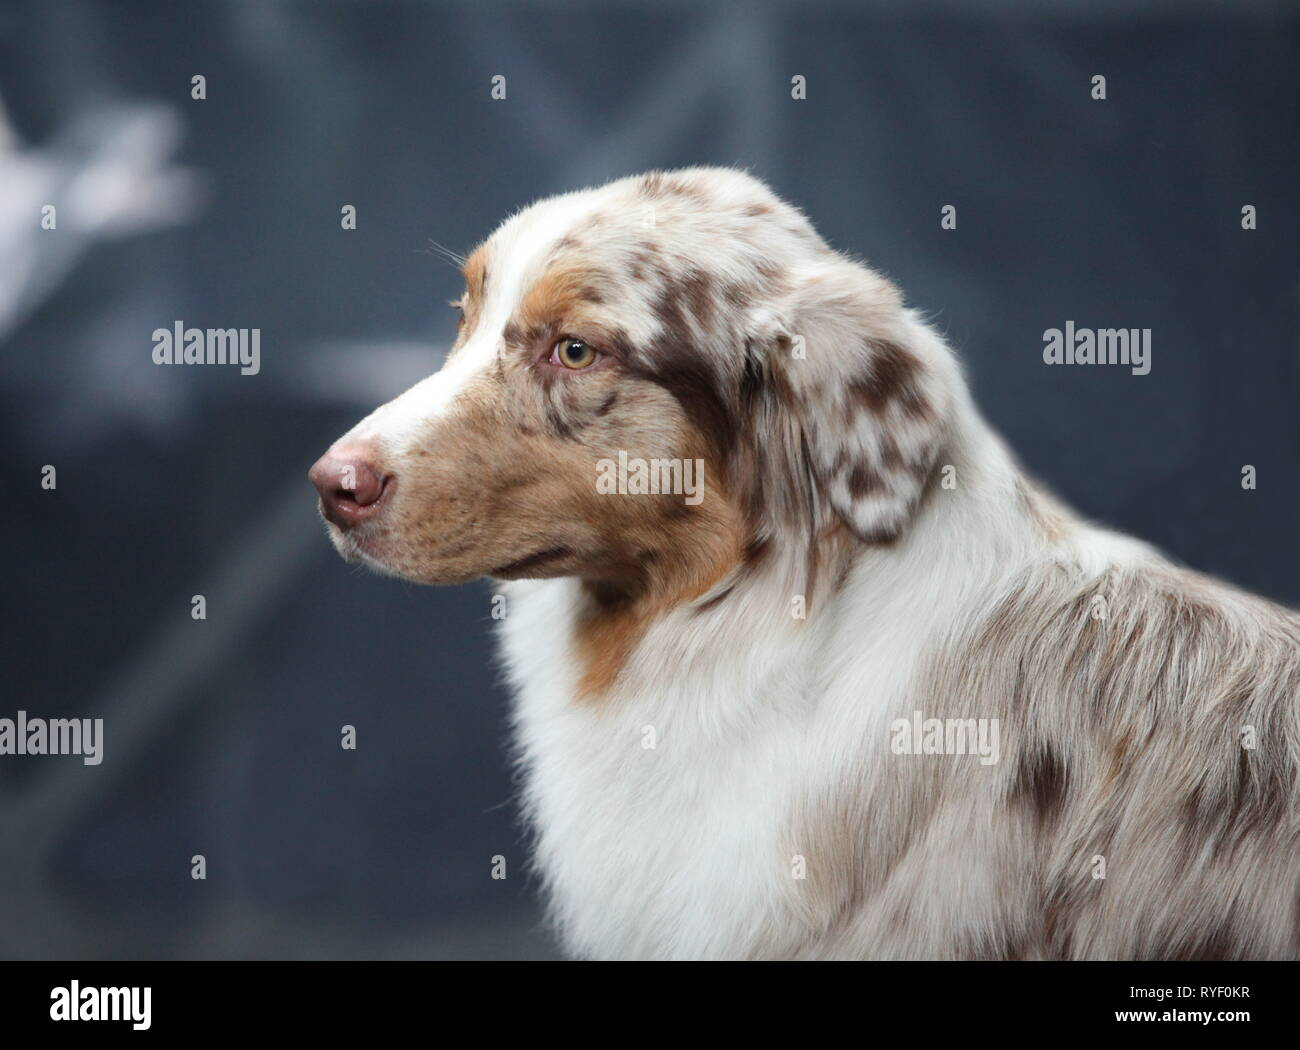 Portrait of a side view of a large dog - Stock Image